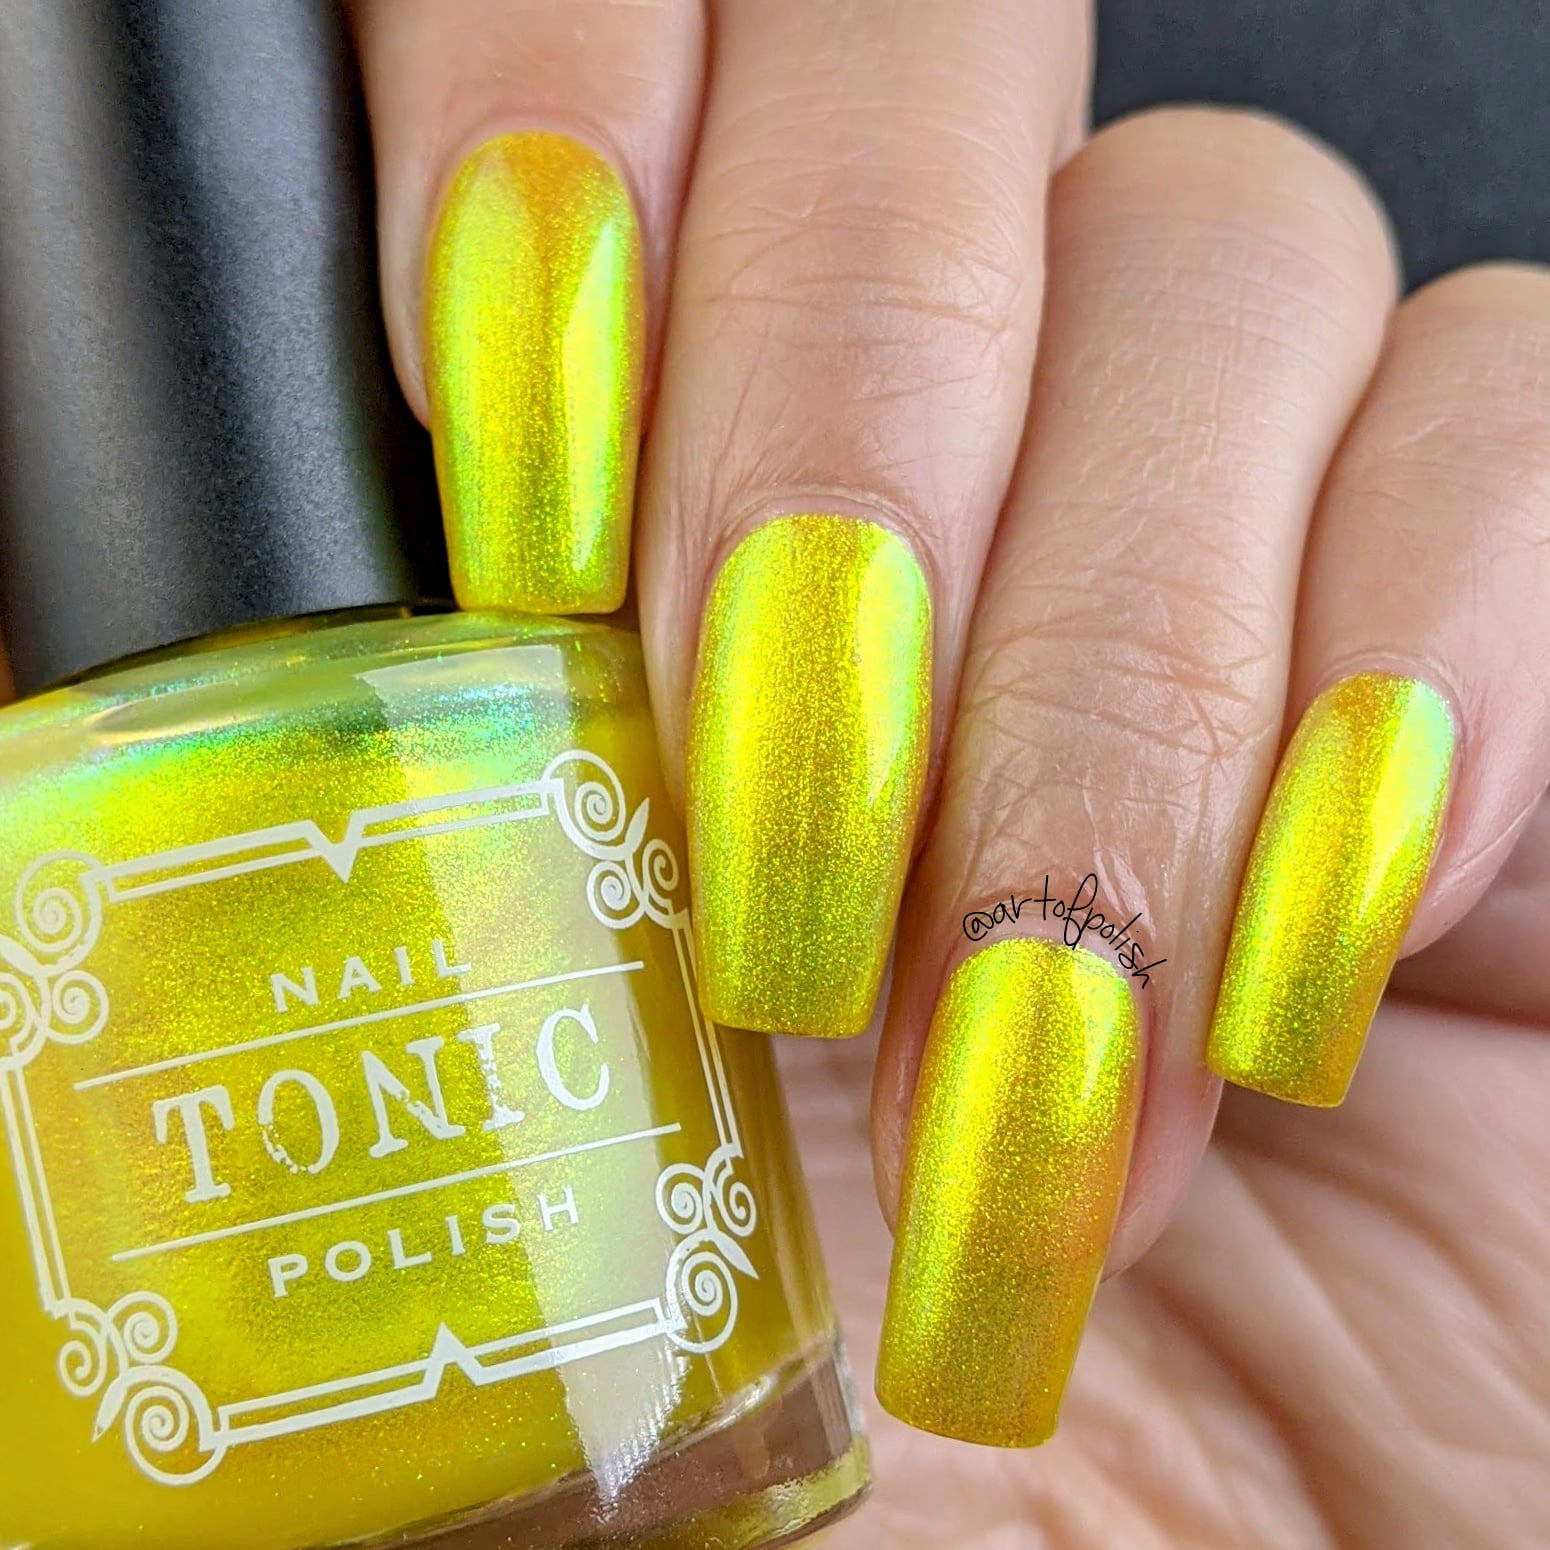 Tonic Polish - Donation Trio - Shine A Light